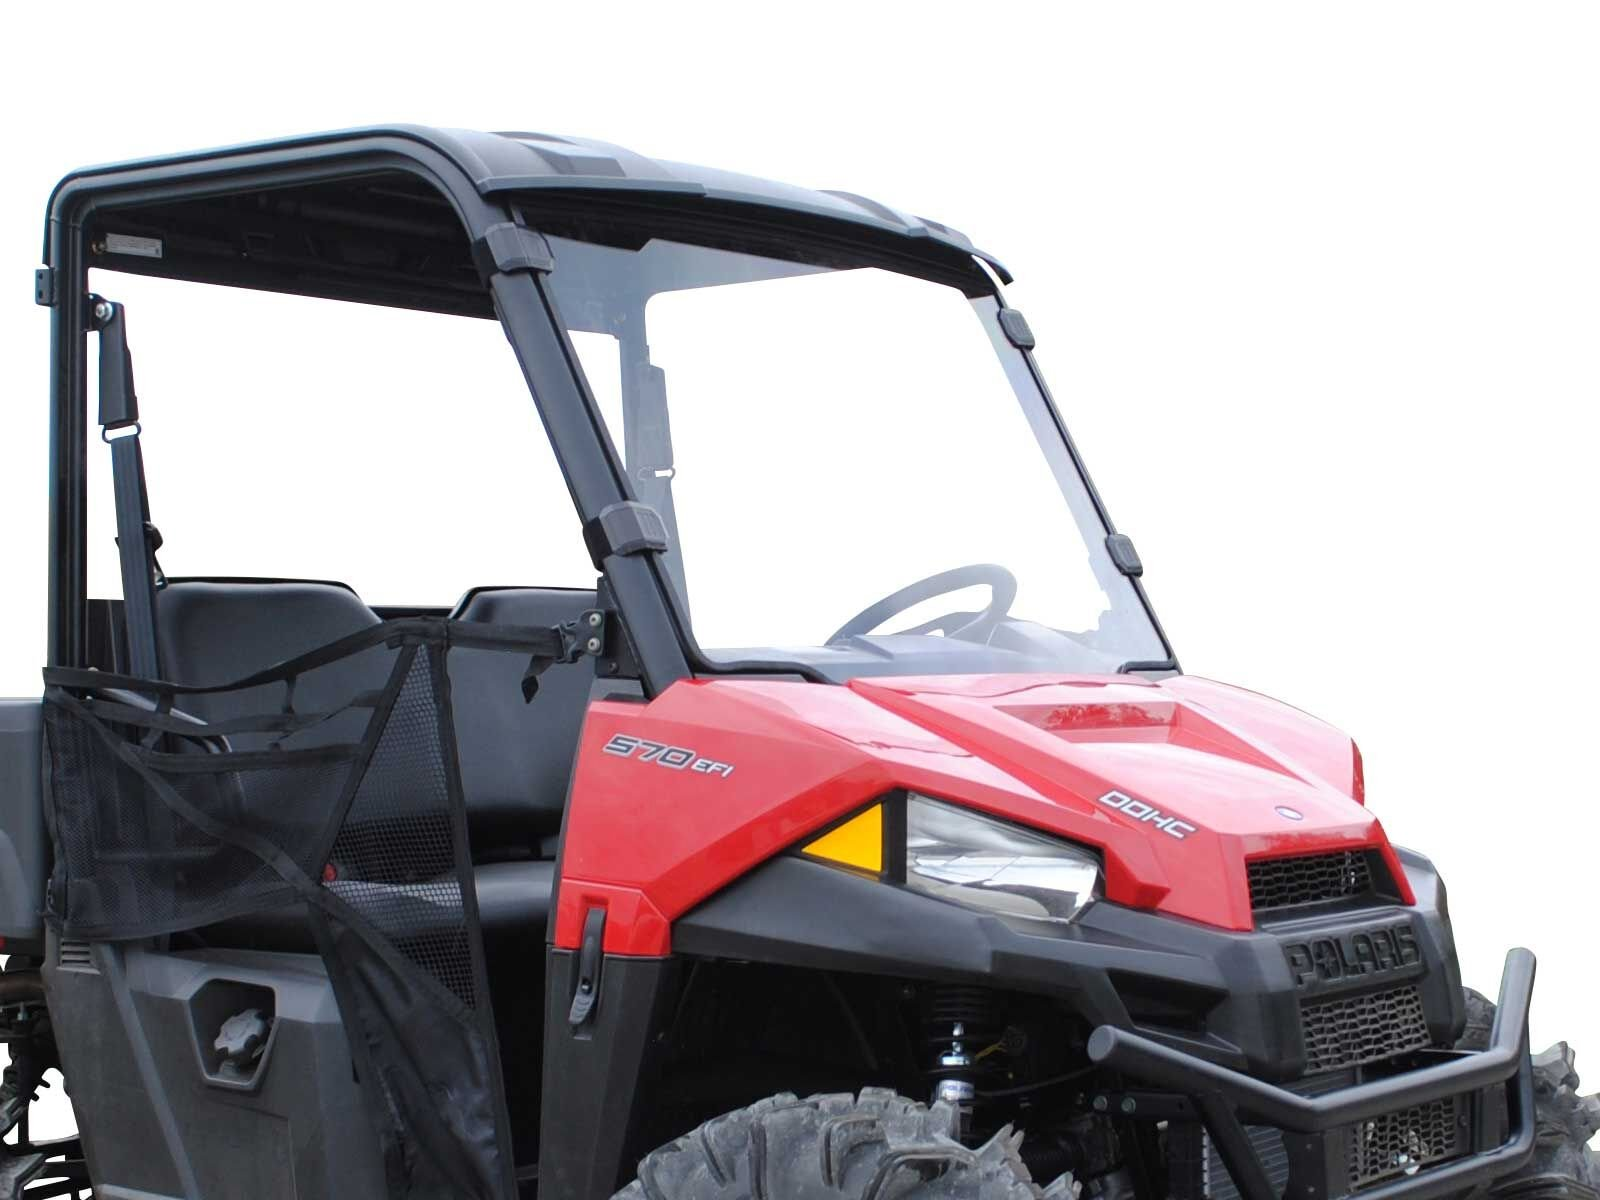 SuperATV Heavy Duty Scratch Resistant Full Windshield for Polaris Ranger Midsize 500/500 Crew / 570 / ETX/EV (See Fitment for Compatible Years) - Installs in 5 Minutes!